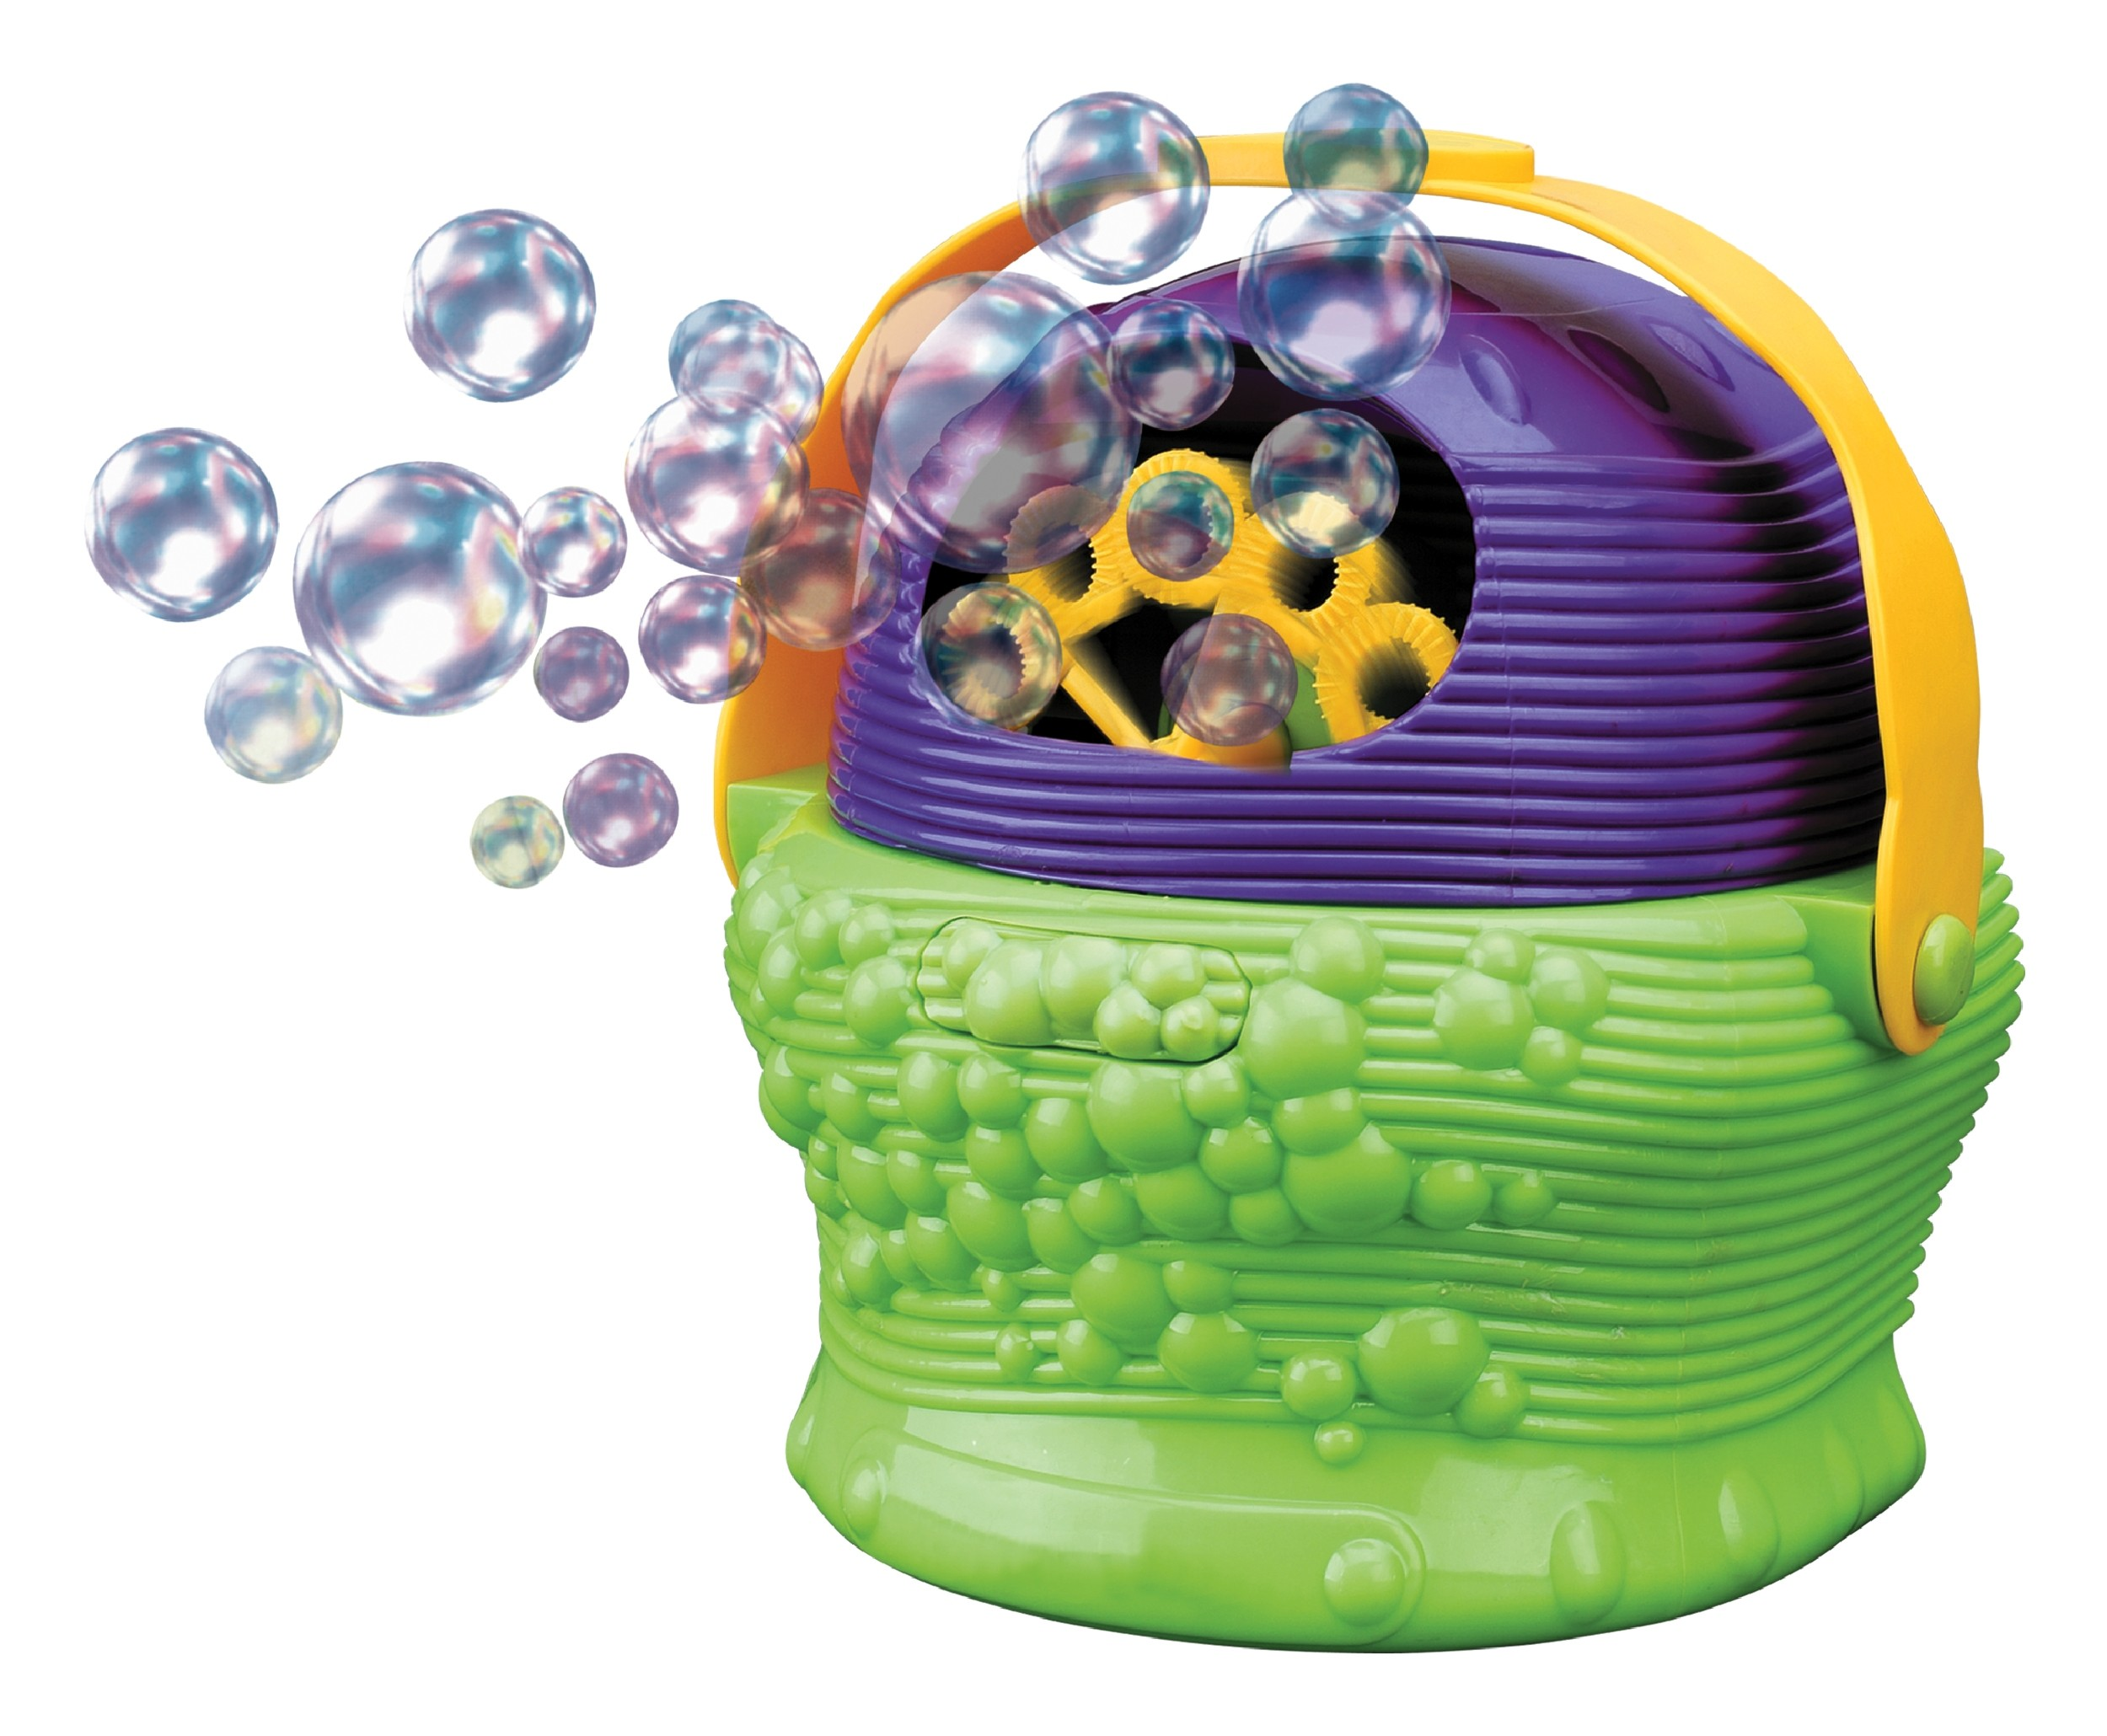 Bubblenator Deluxe Bubble Blower